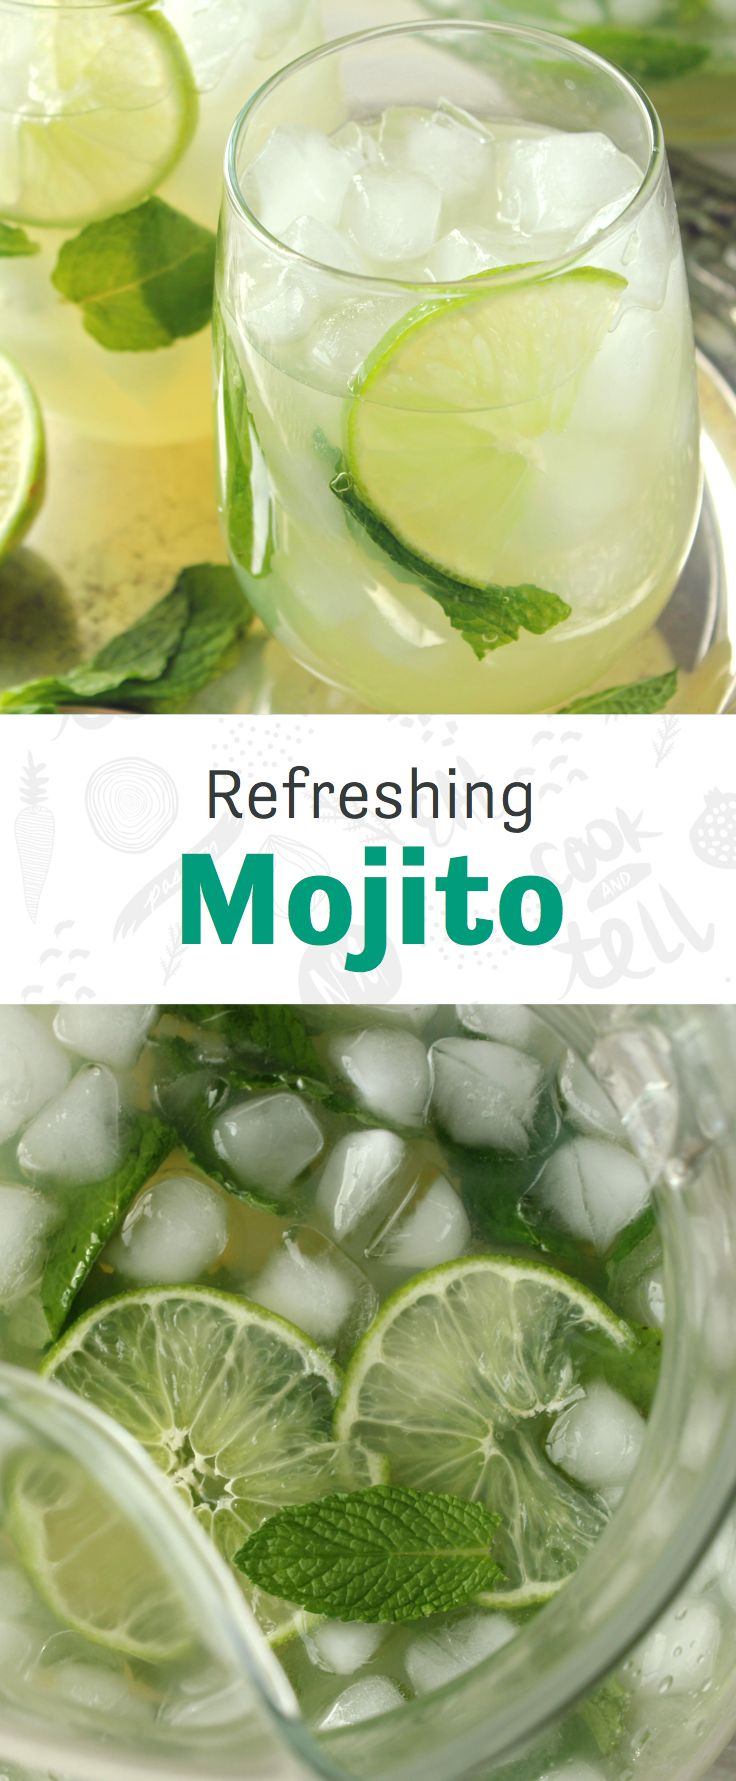 This mojito recipe comes by the pitcher. You're welcome.